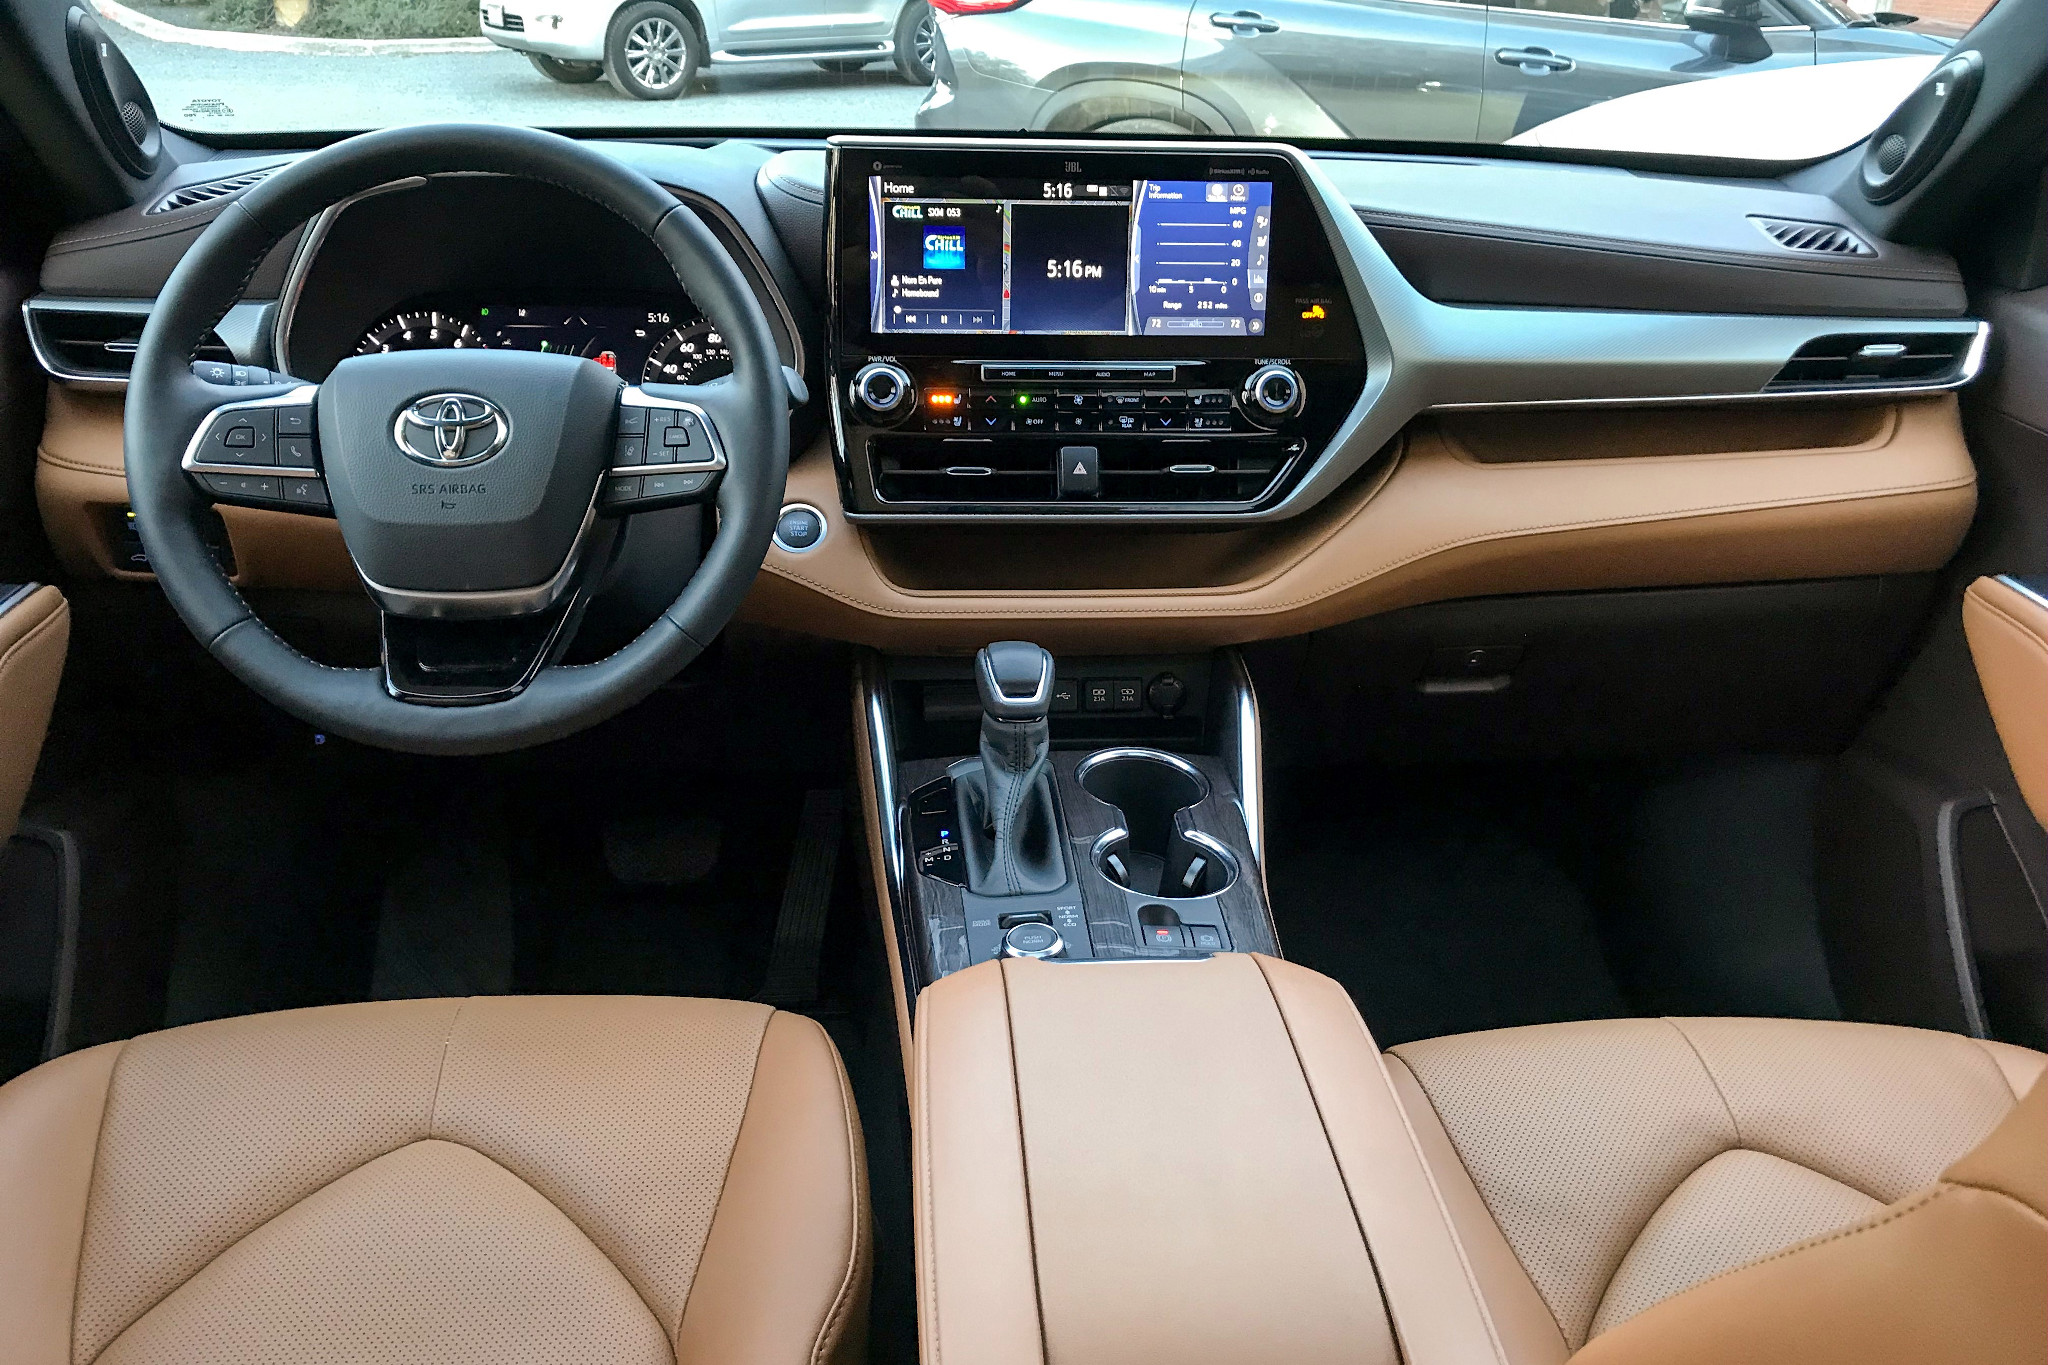 2020 toyota highlander: 5 pros and 4 cons | carsradars